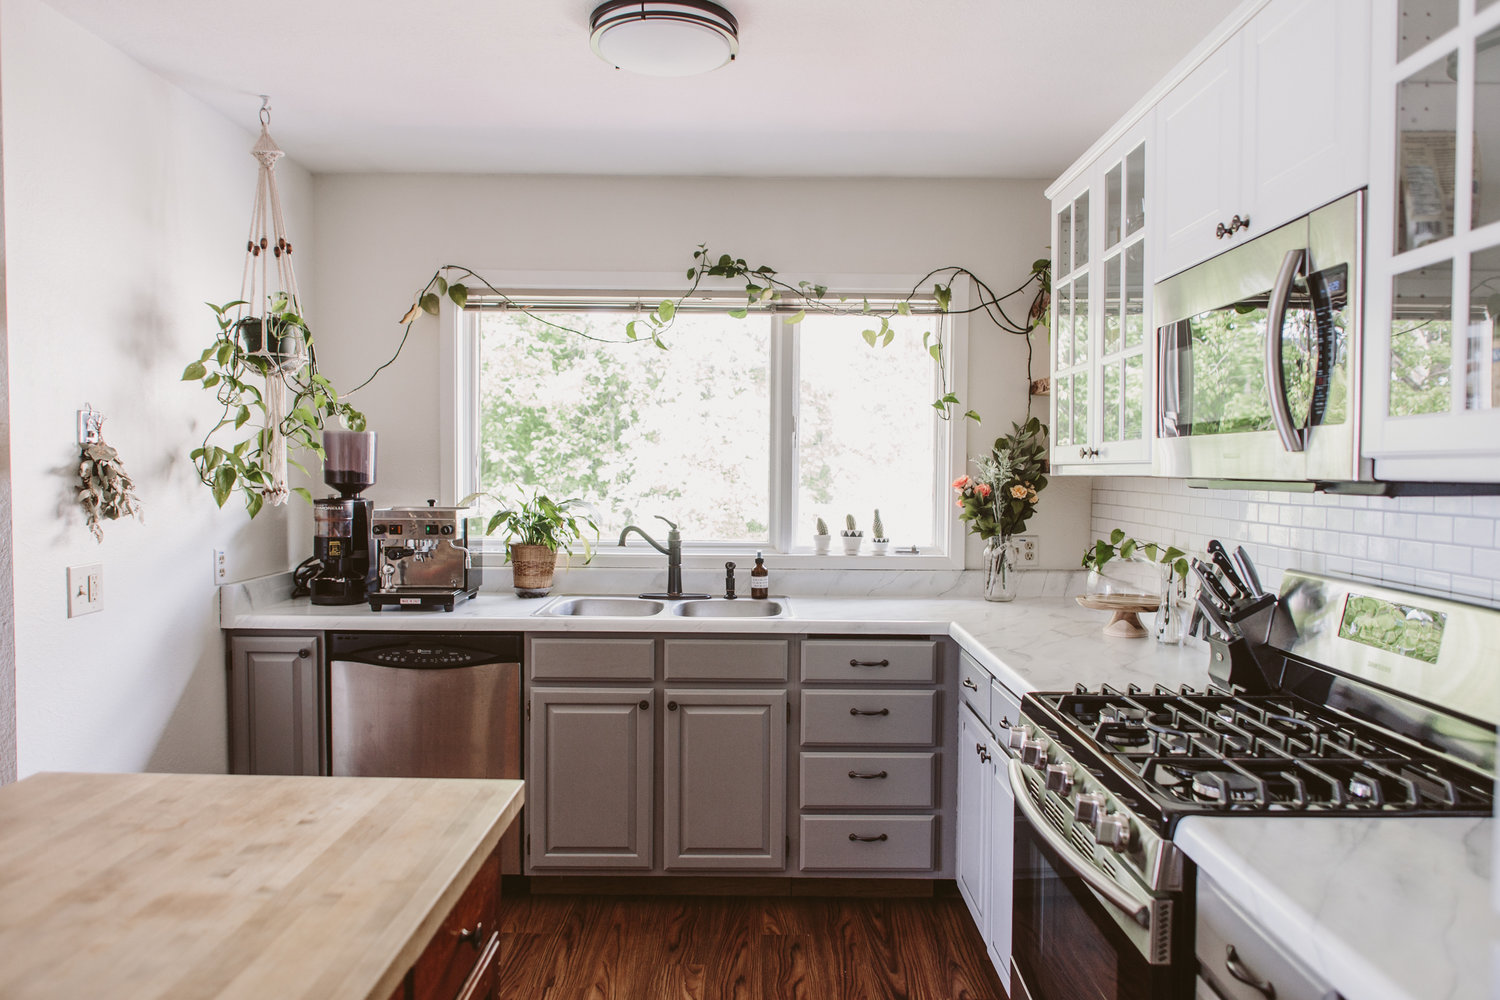 Our Apartment Kitchen Remodel — Liz Morrow Design